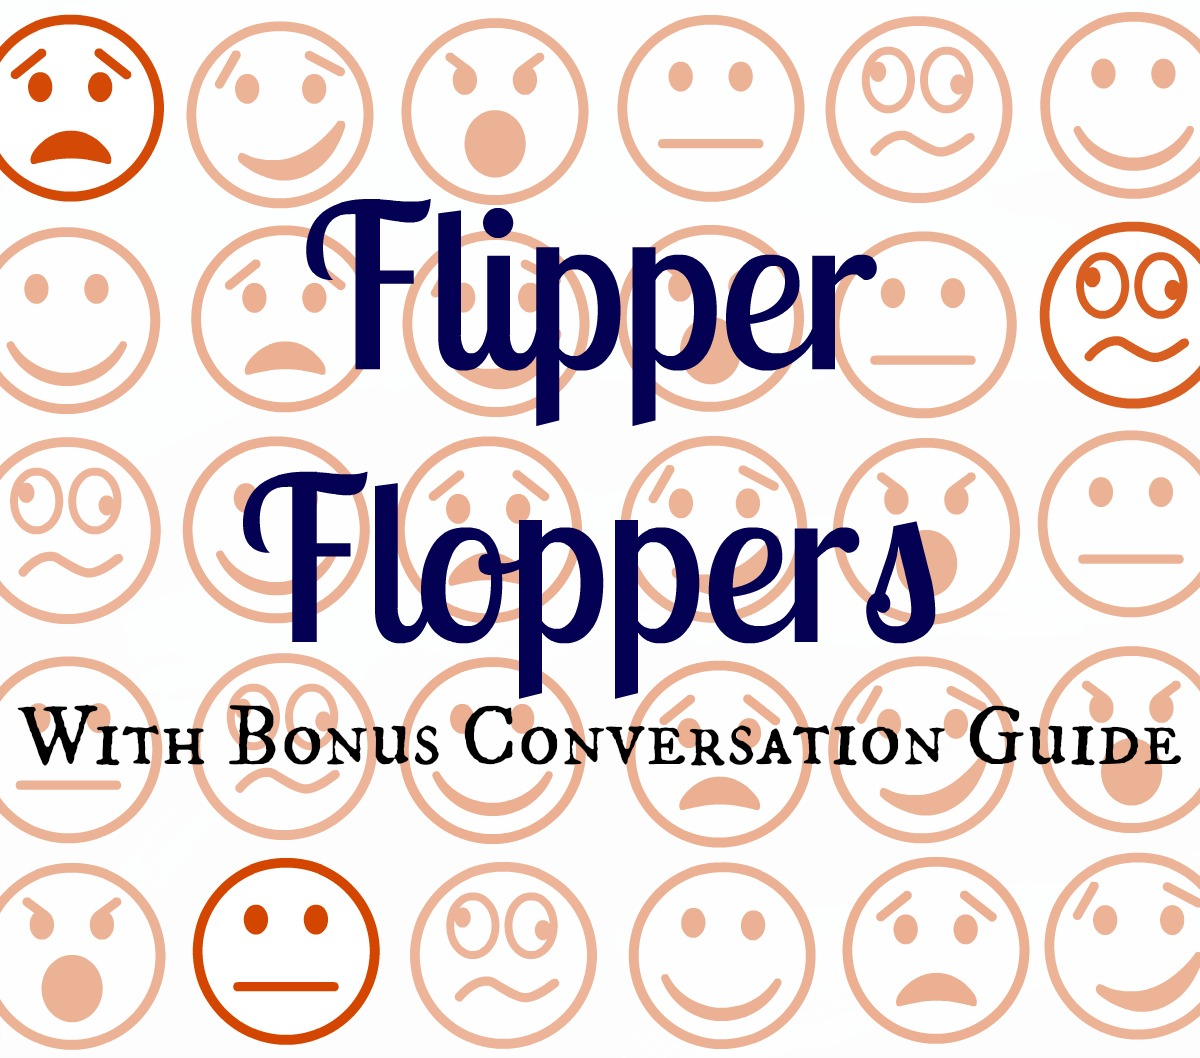 Flipper Floppers: With Bonus Conversation Guide